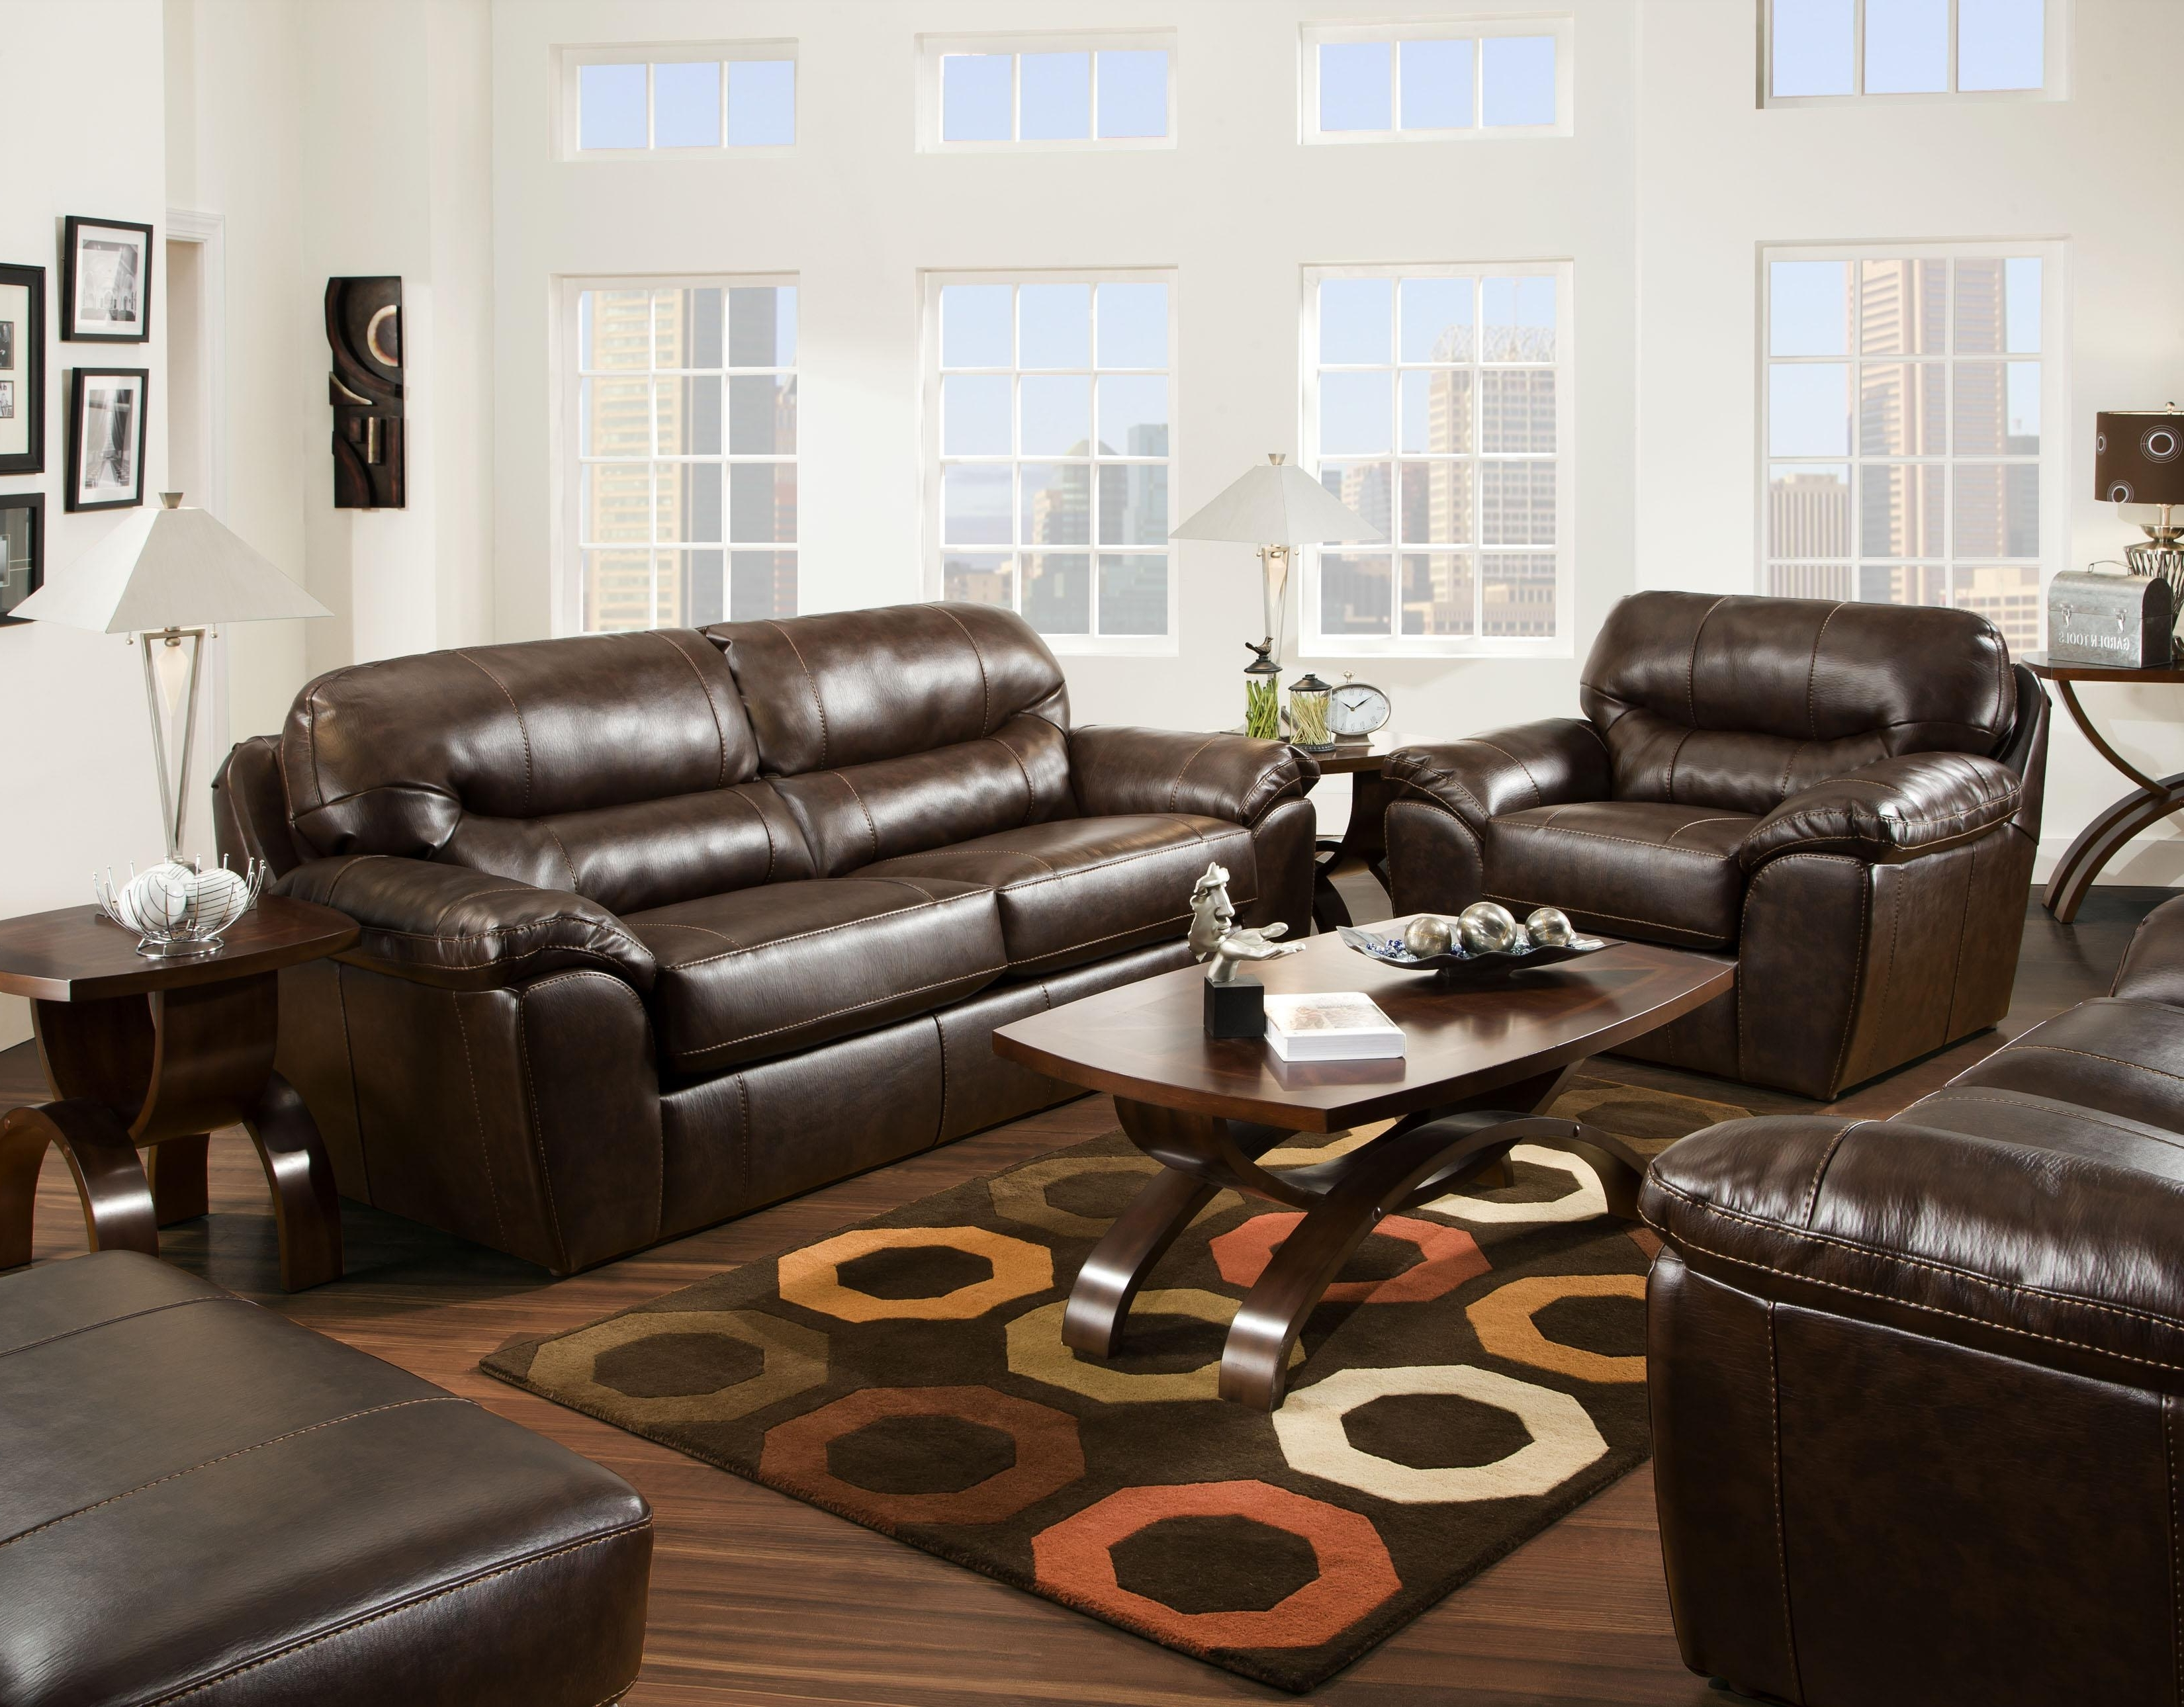 Preferred Furniture : Claudia Ii Leather Sofa And Loveseat Macys Leather With Regard To Sectional Sofas At Barrie (View 9 of 15)